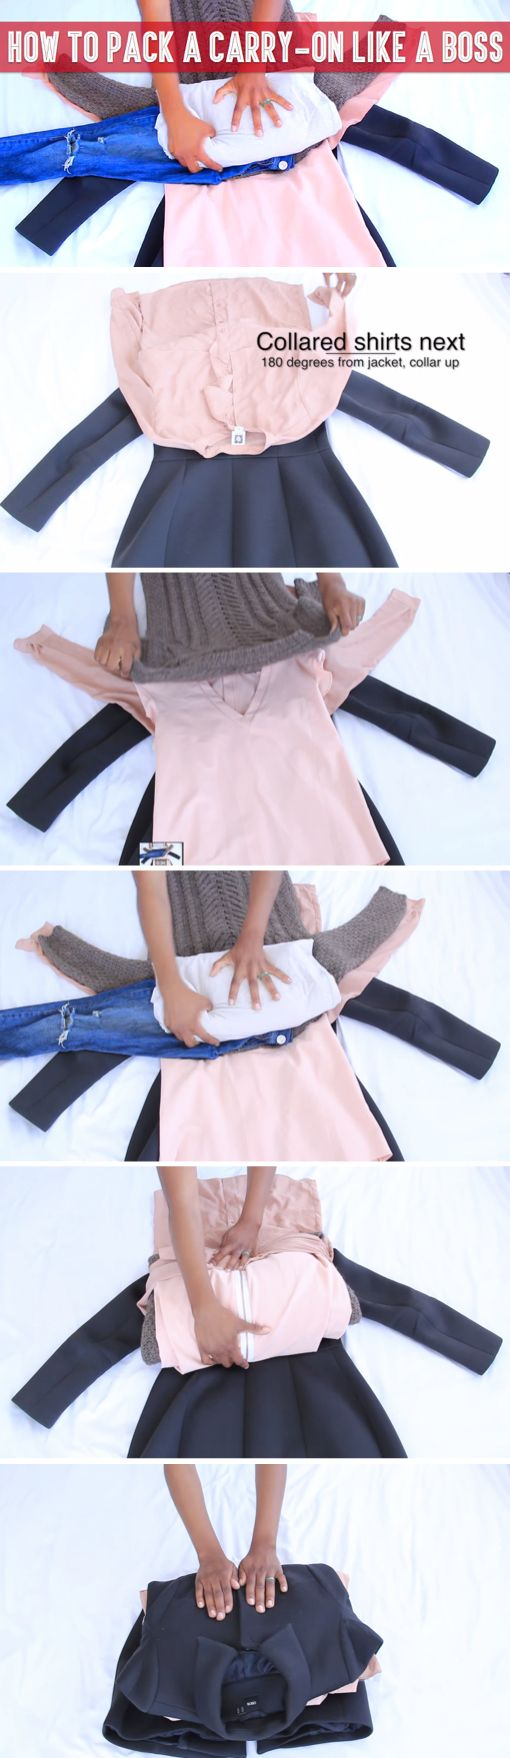 Check Out This Life Hack And You You have been packing your belongings all wrong until now – this is the right way to do it! Will Never Worry About Forgetting Your Clothes At Home Again!